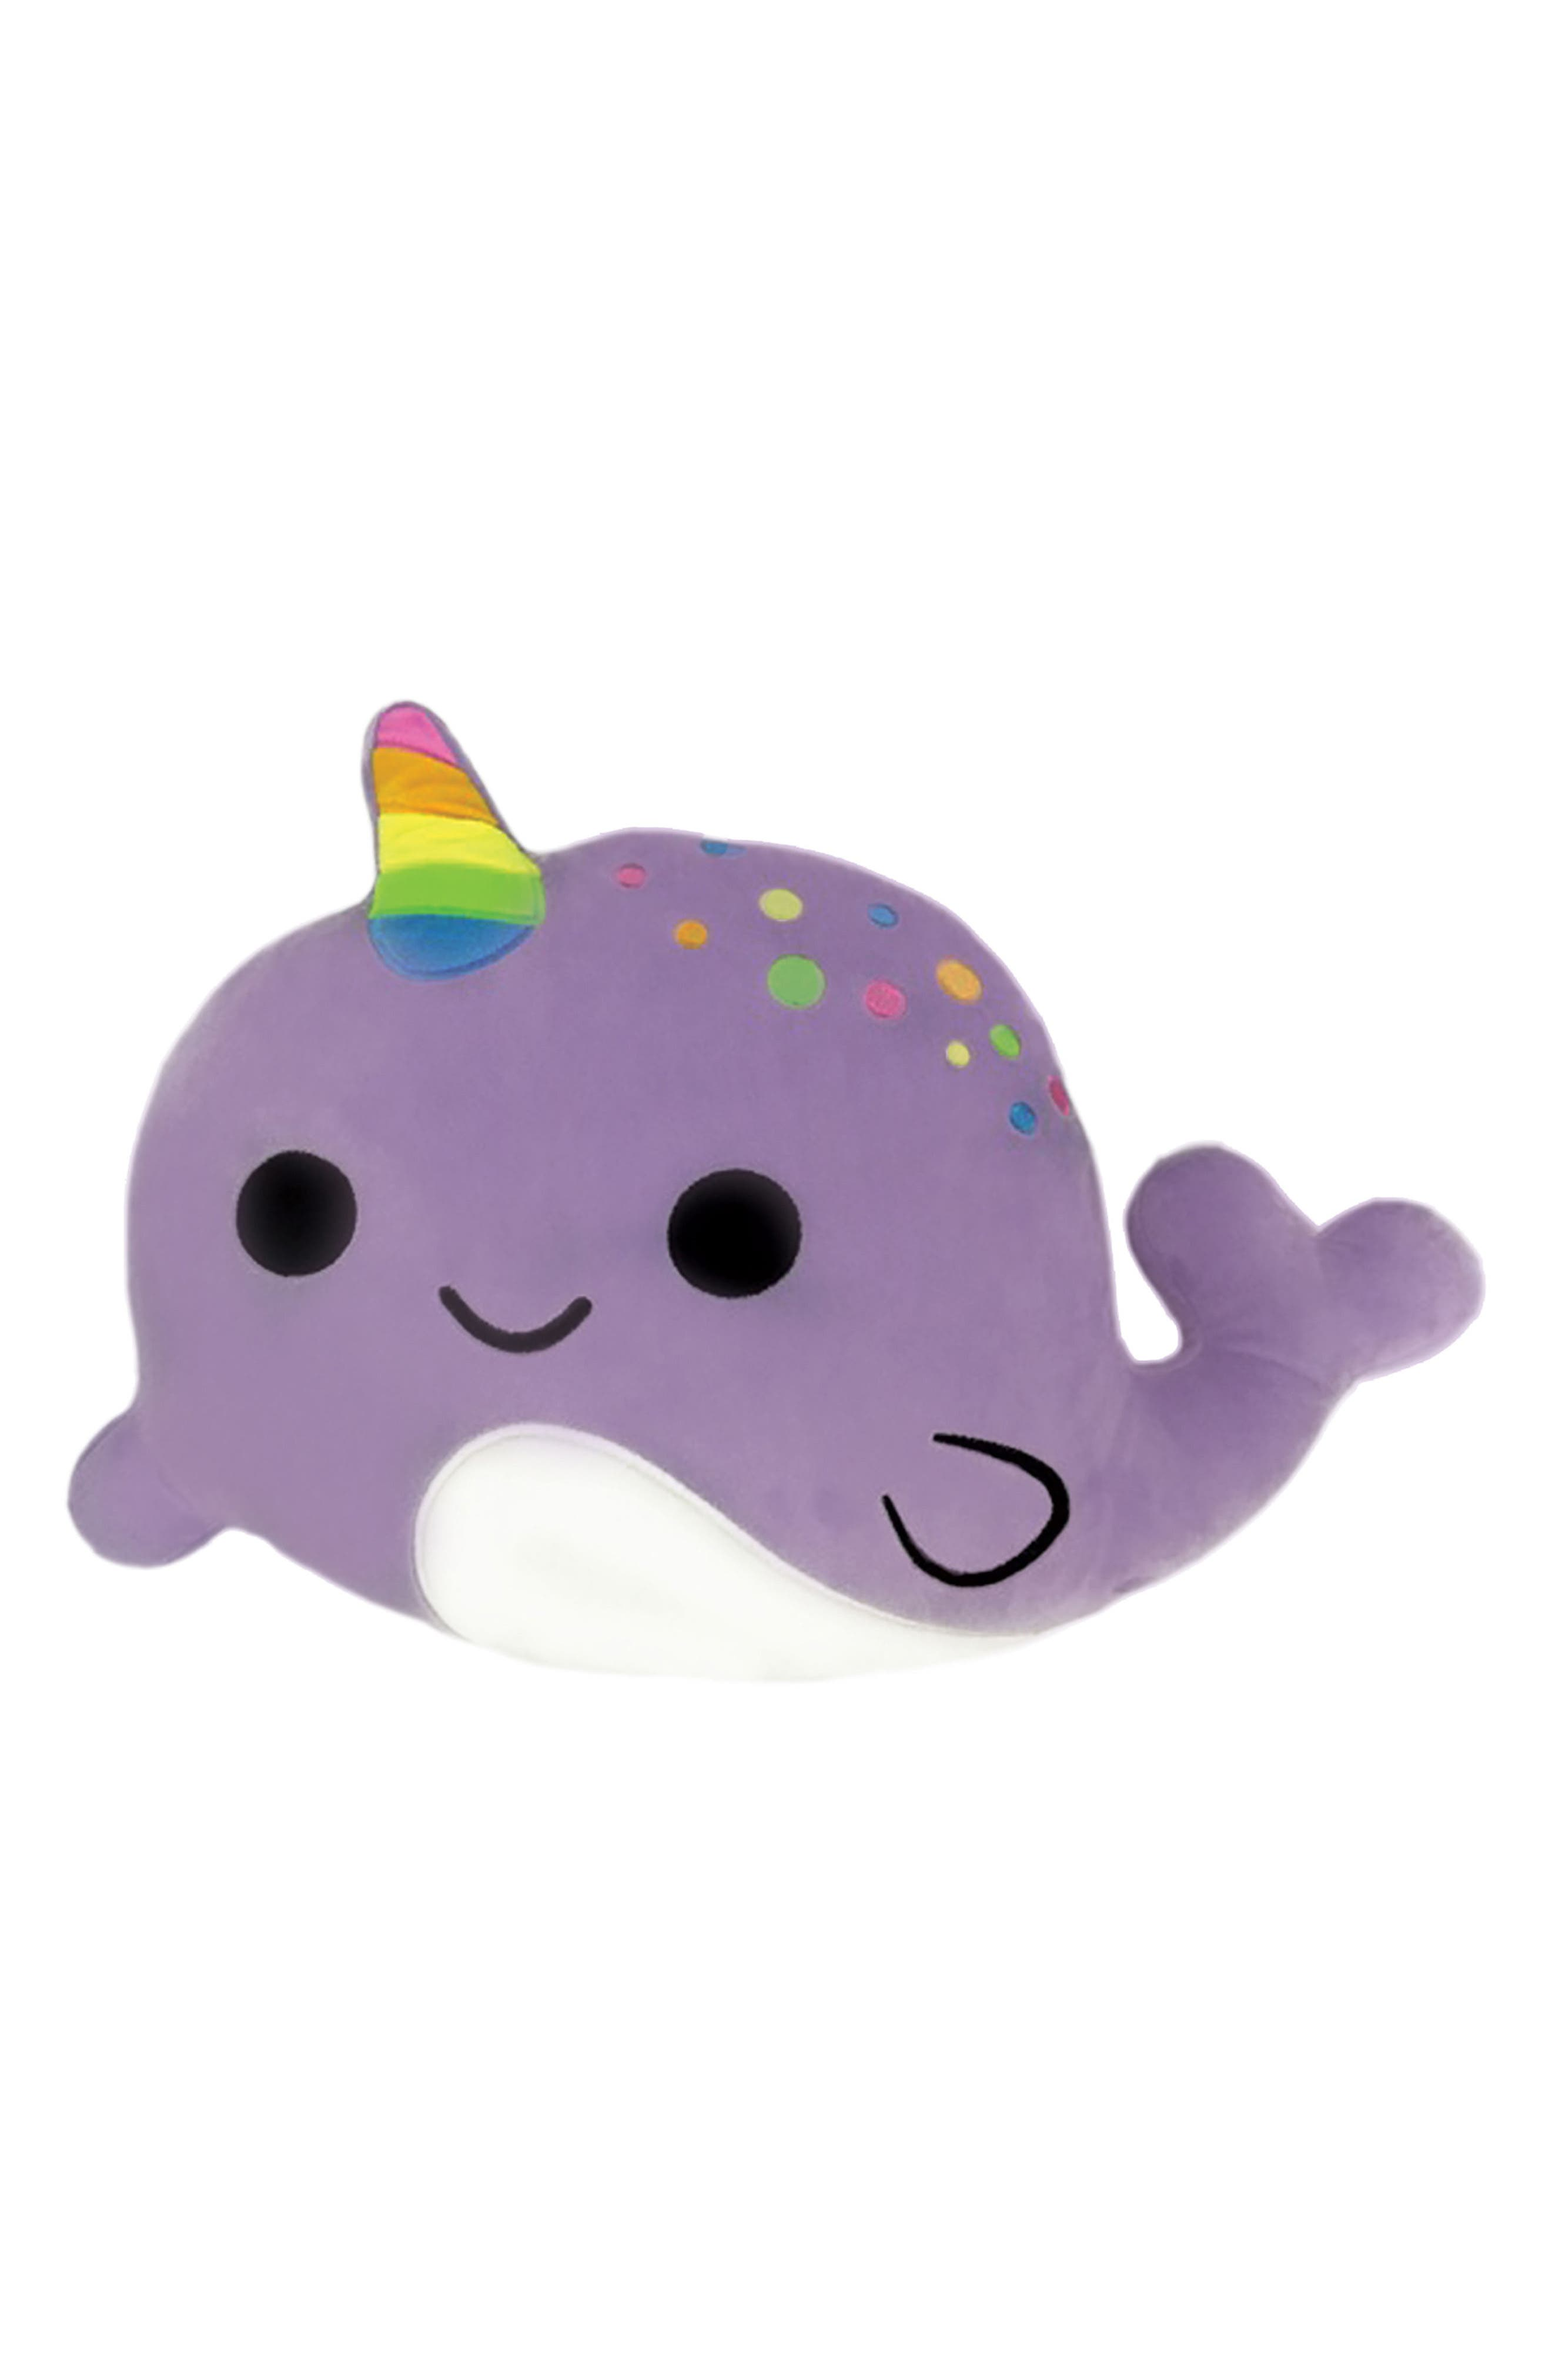 Scented Narwhal Pillow,                         Main,                         color, 500